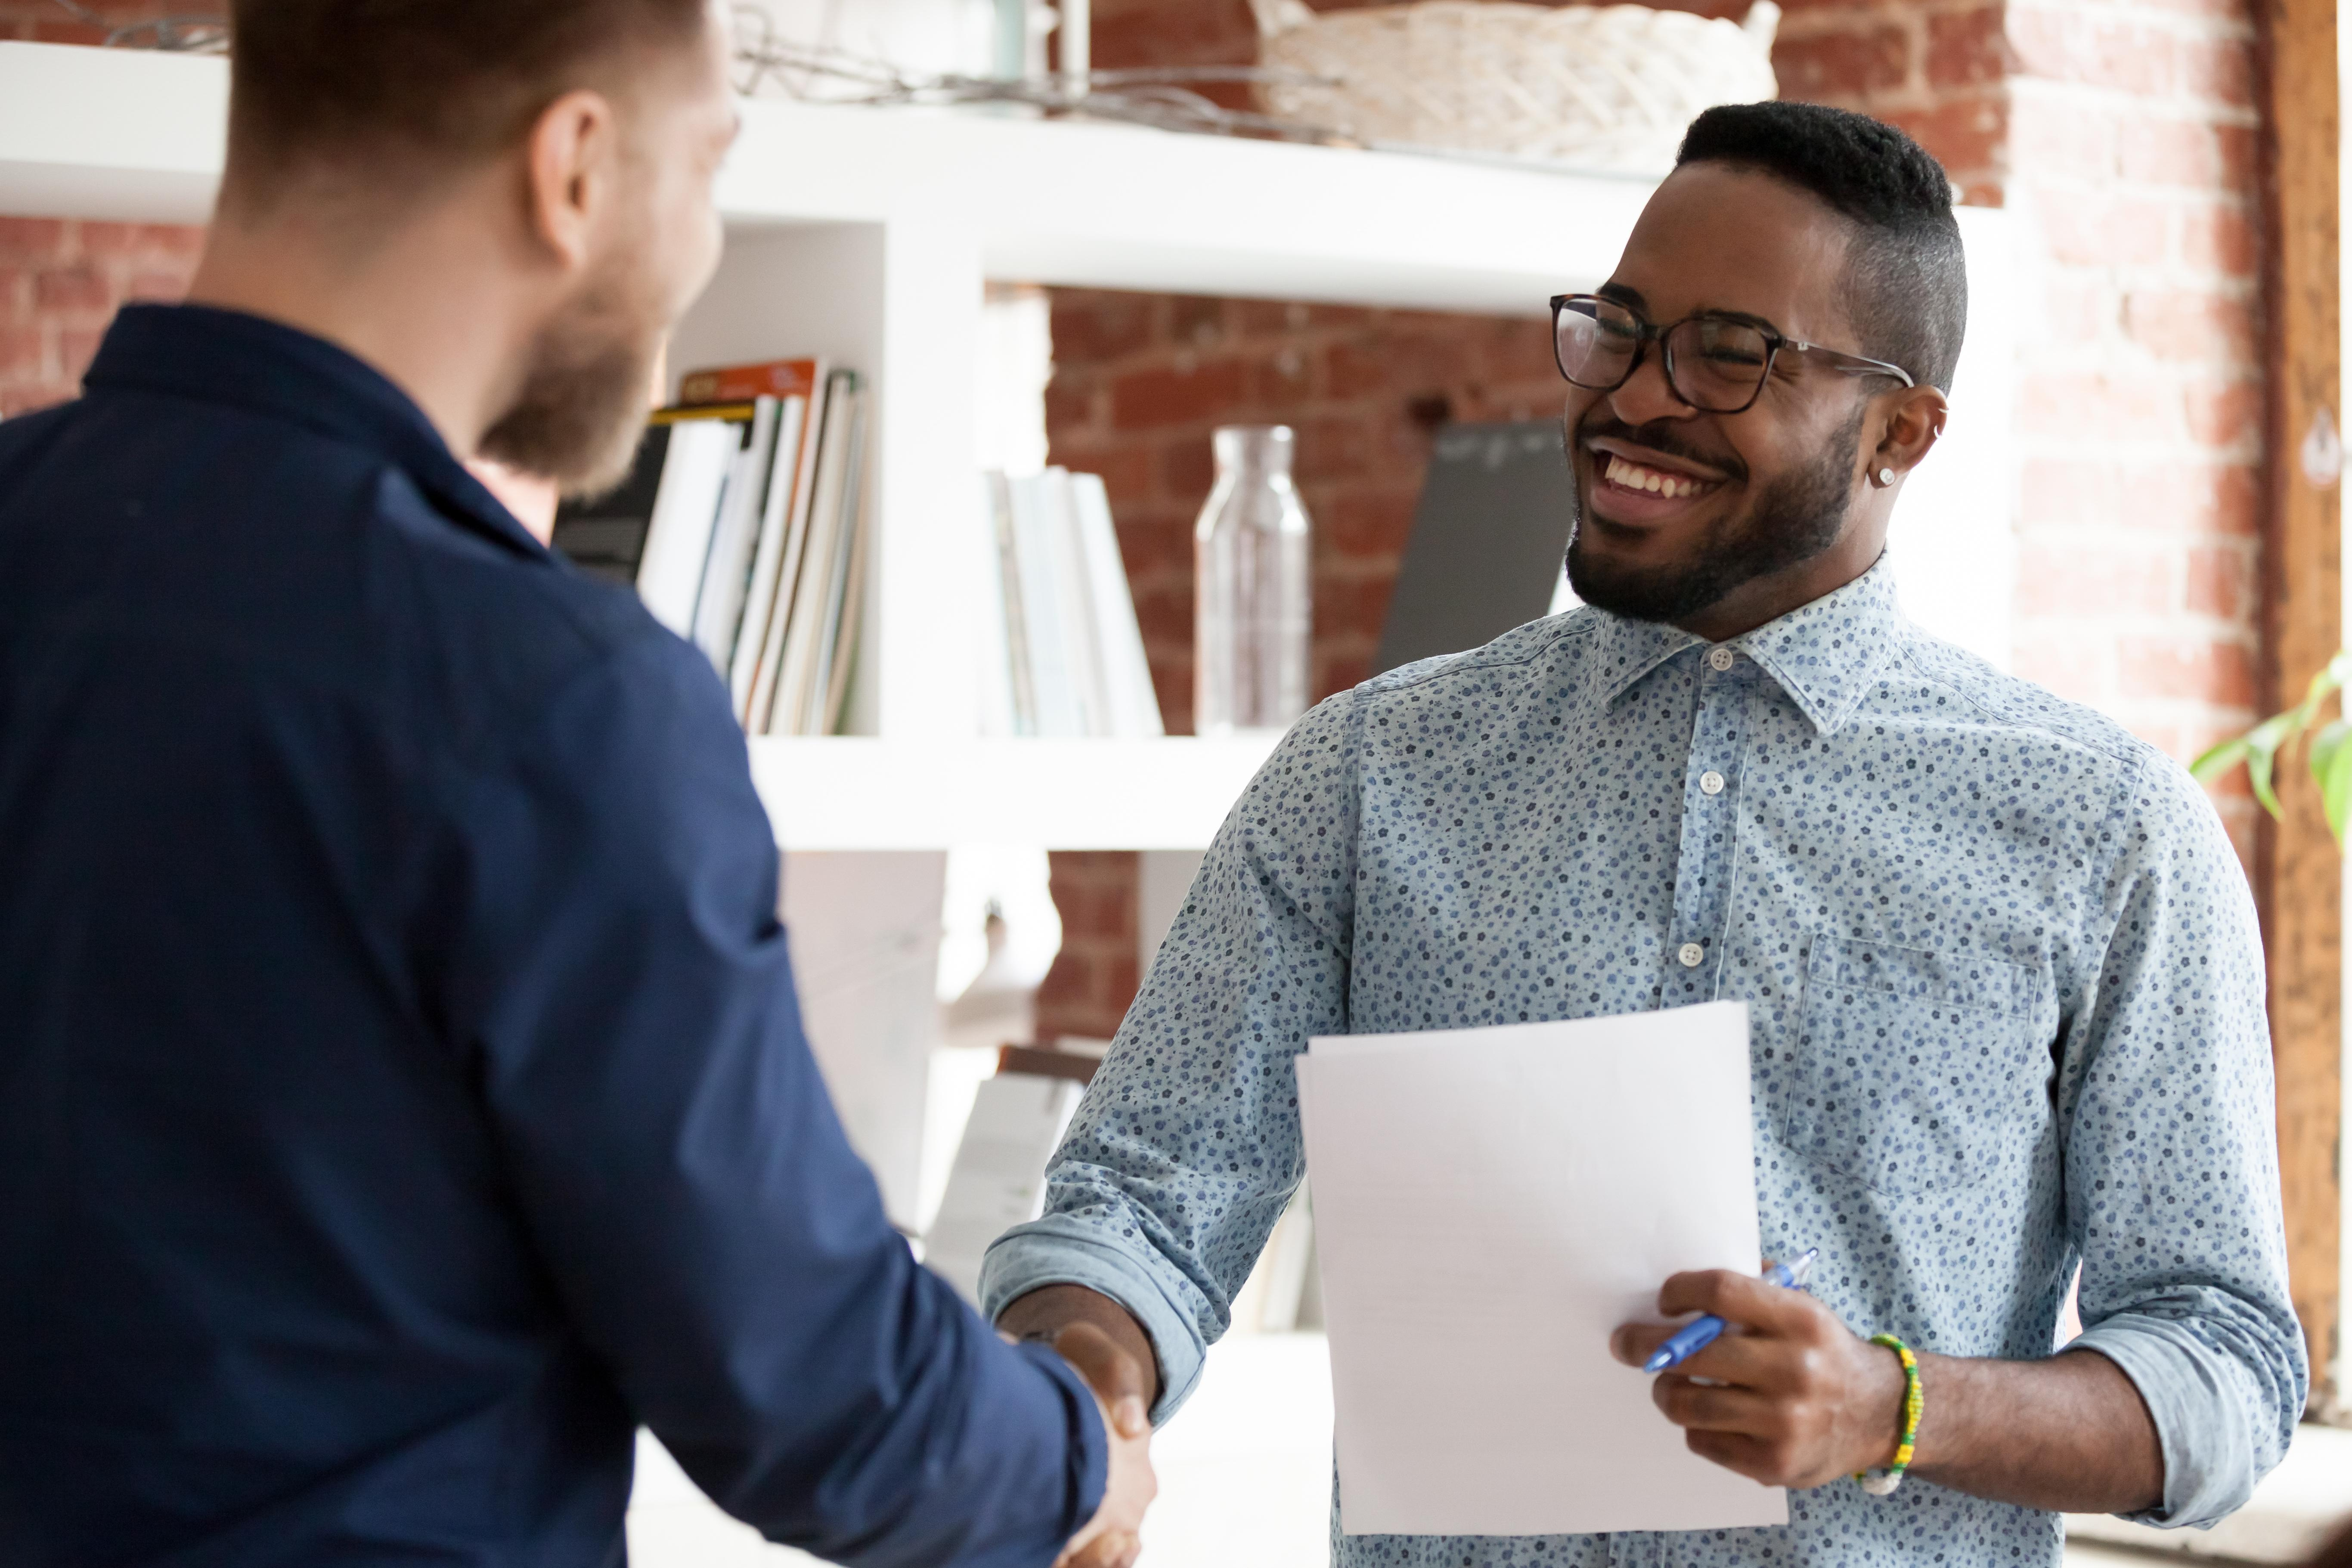 'People can't apply to jobs they don't know exist': 2 simple ways employers can find Black talent